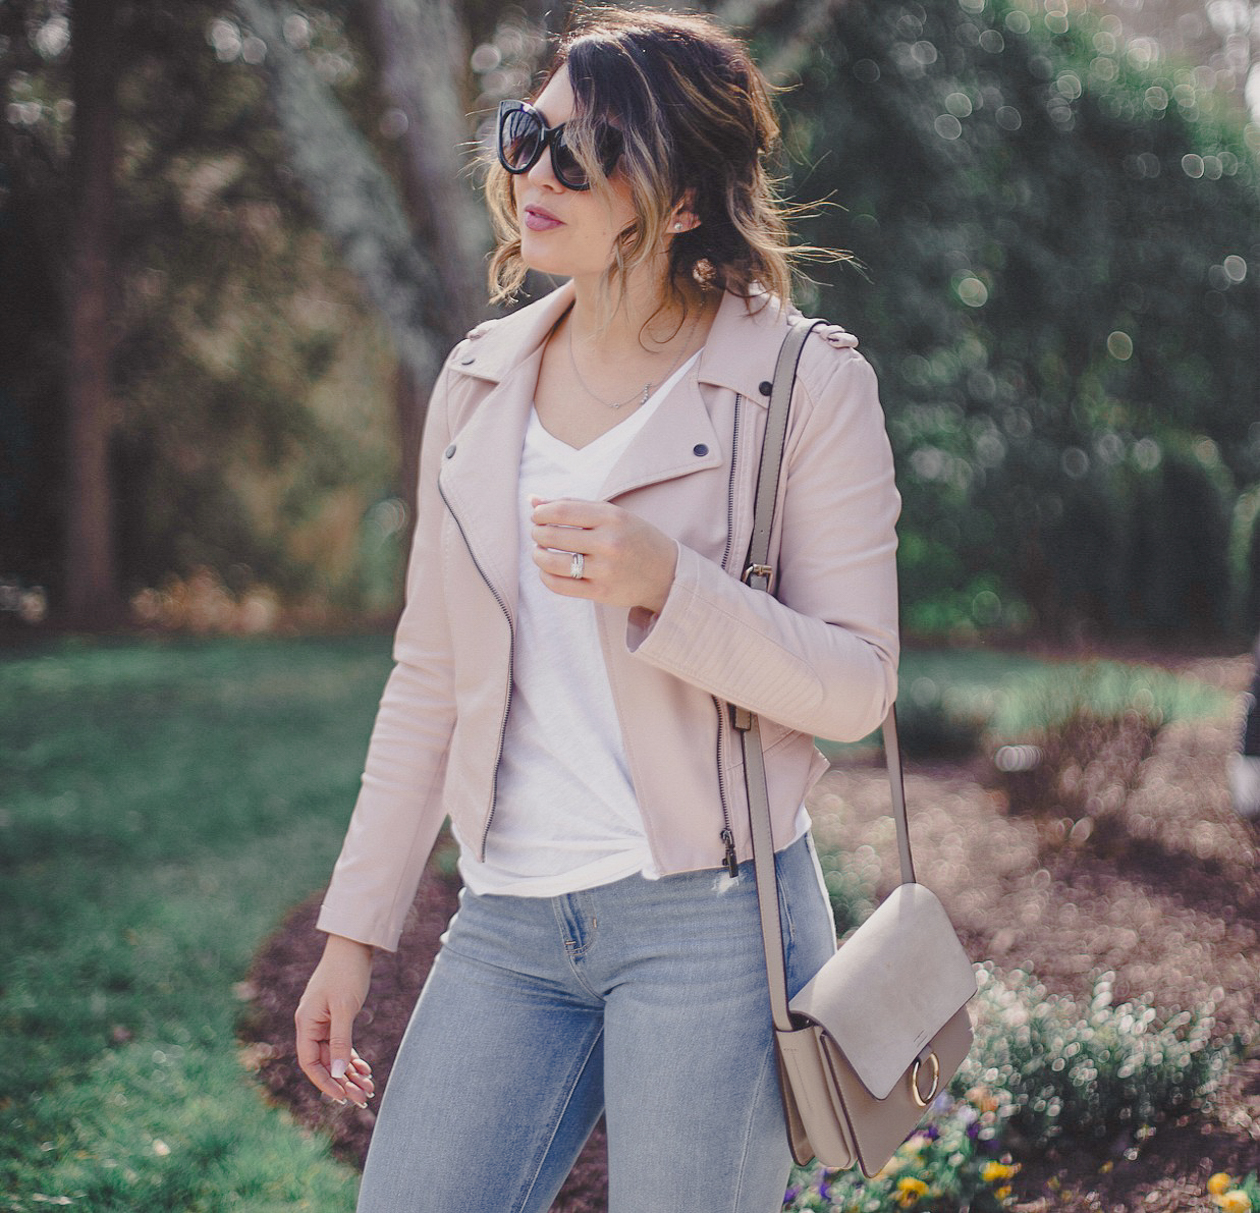 pink moto jacket, mom jeans, american eagle denim, ae mom jeans, blush neutral outfit, pink moto jacket outfit, gray chloe dupe, xo samantha brooke, life and messy hair, sam brooke photo, samantha brooke